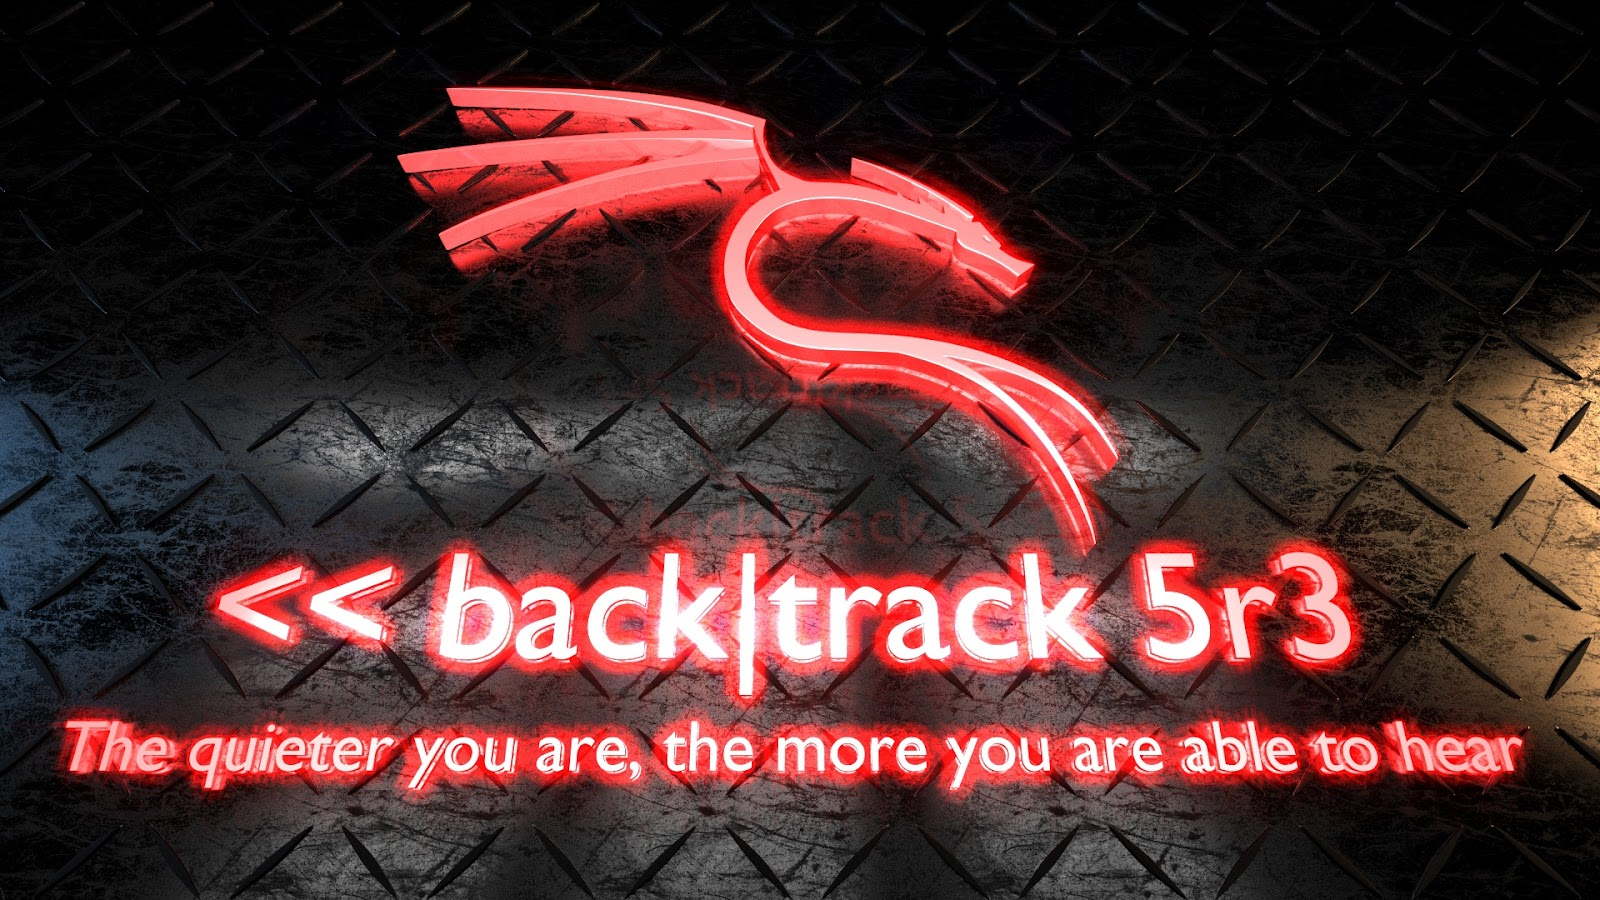 30 WALLPAPER HD BACKTRACK Fordigo 30 WALLPAPER HD BACKTRACK